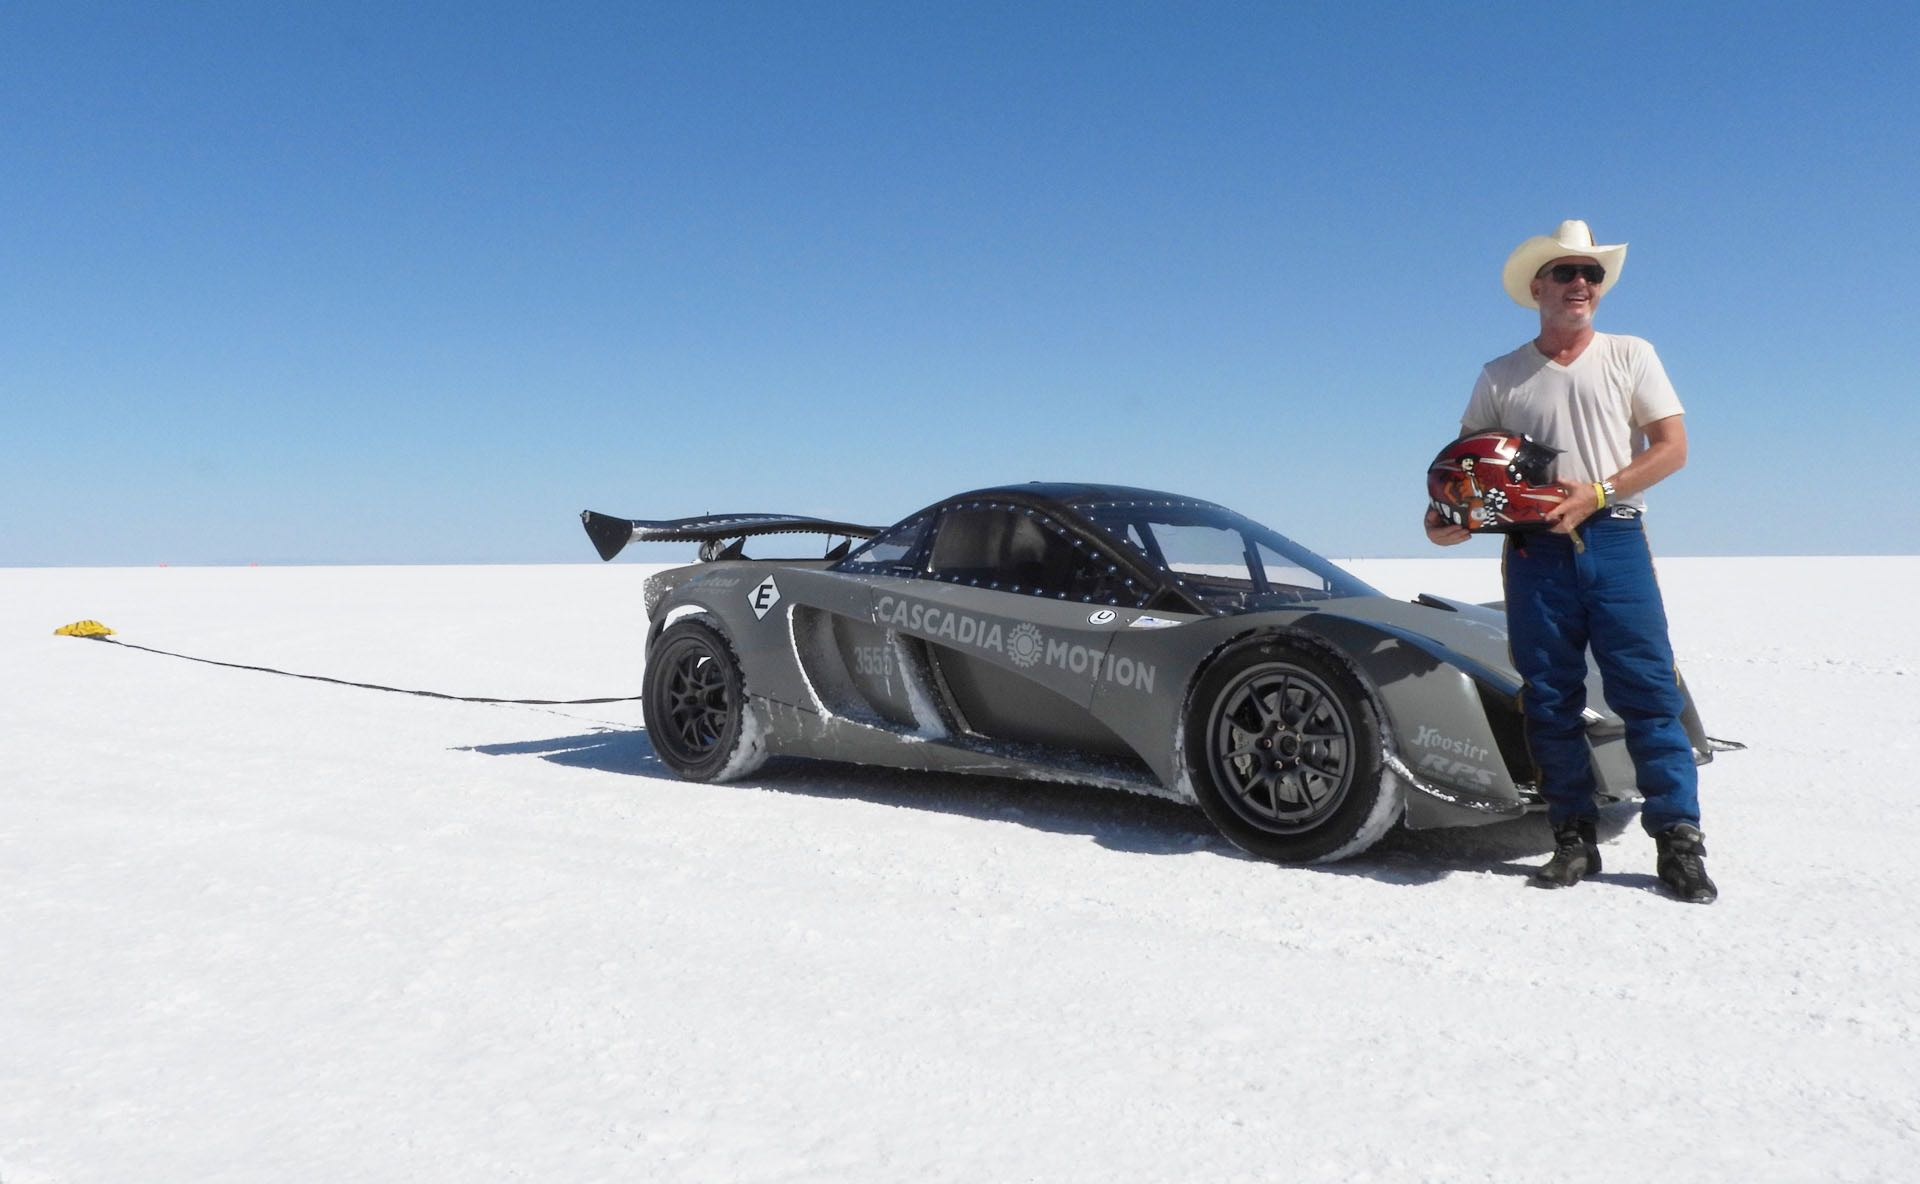 When he's not racing Pikes Peak, Dennis Palatov plans to revolutionize the battery industry